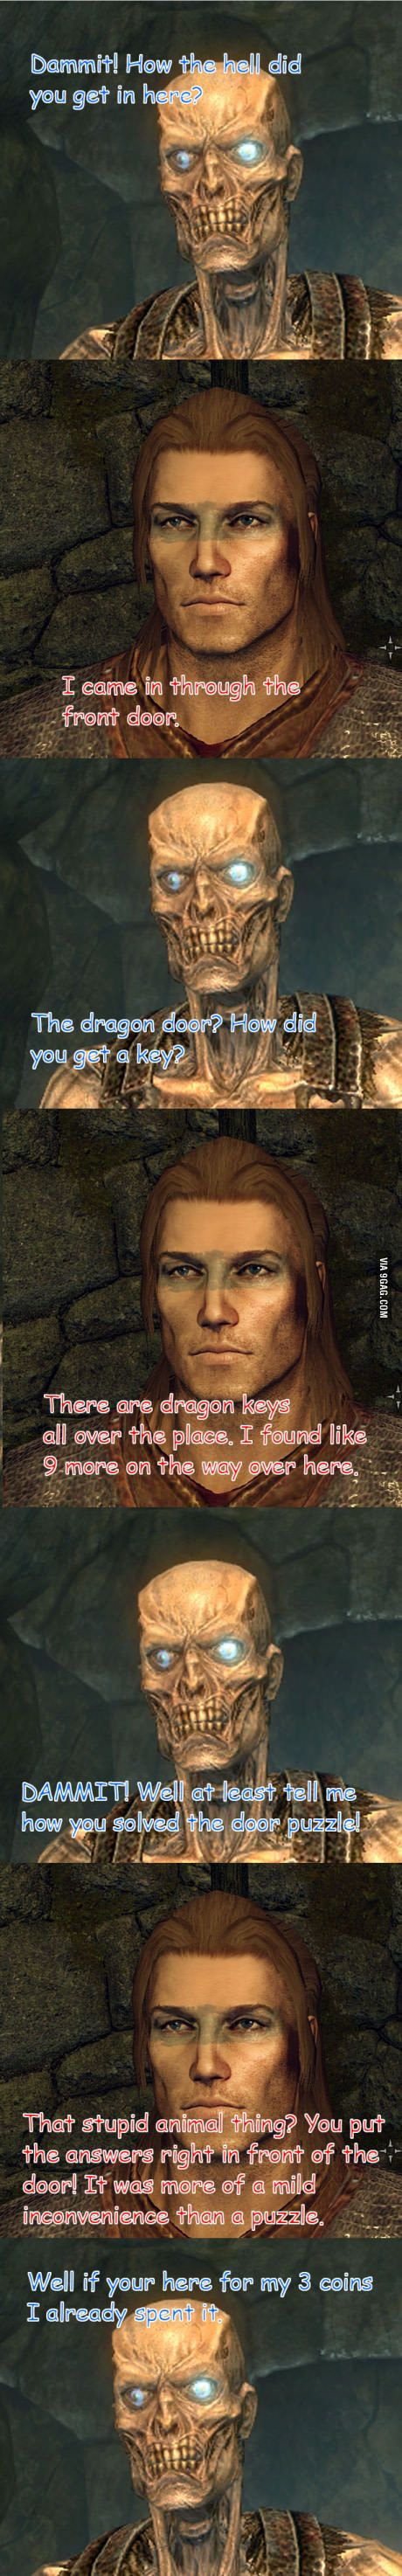 Skyrim Security. IDK about you, but Skeletor's voice was all I could imagine coming out of that draugr's mouth